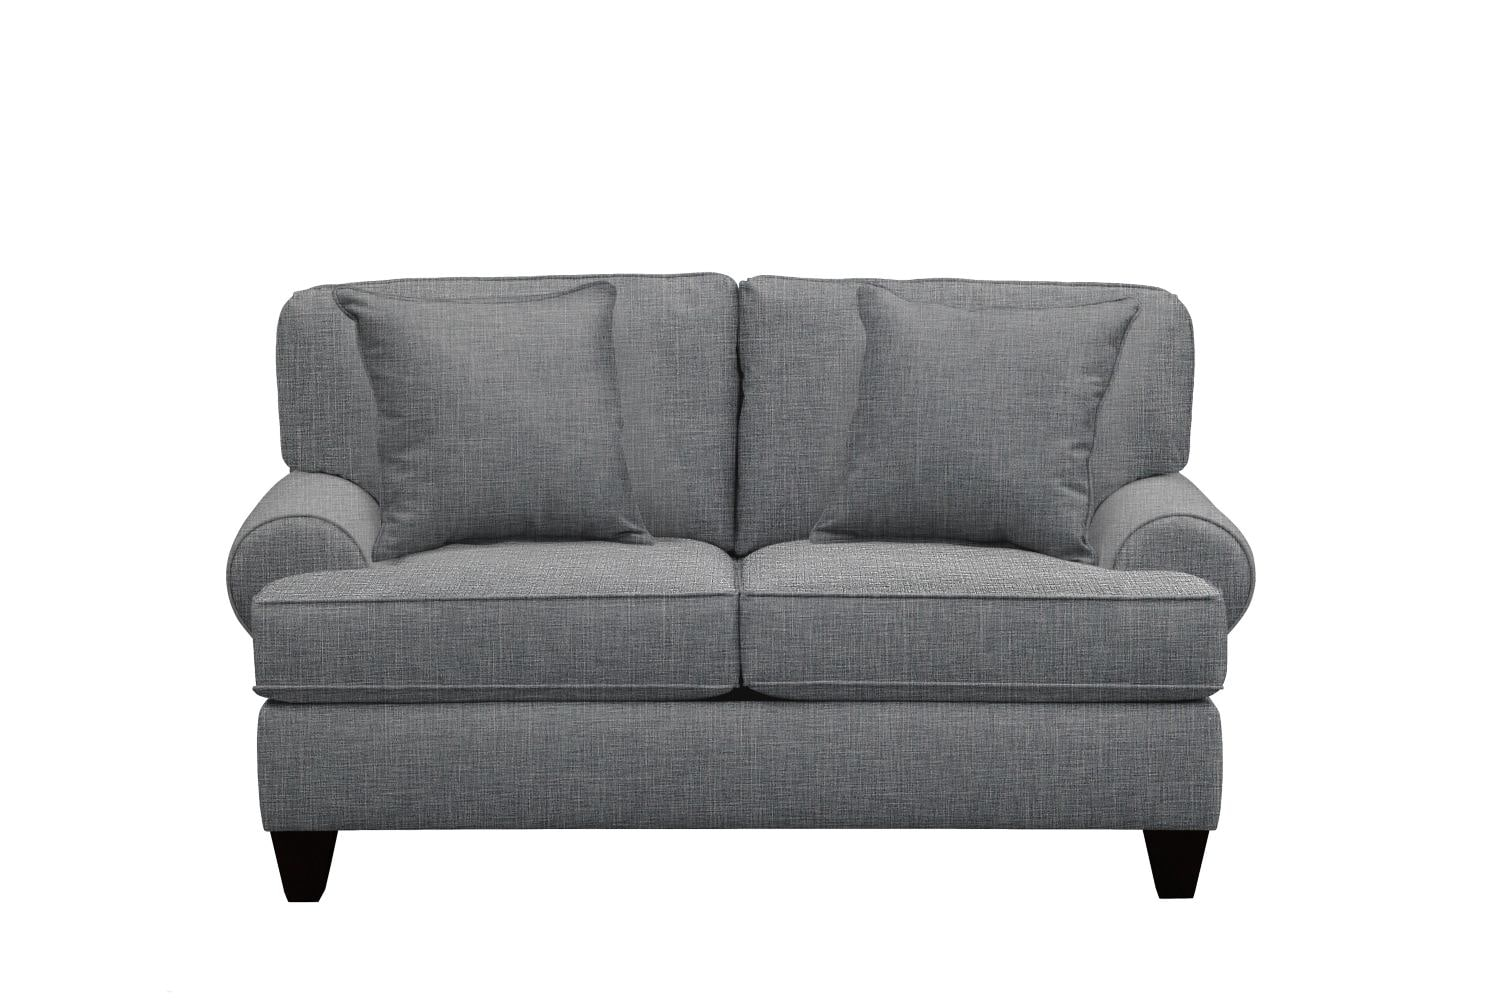 "Living Room Furniture - Bailey Roll Arm Sofa 67"" Milford II Charcoal w/ Milford II Charcoal  Pillow"